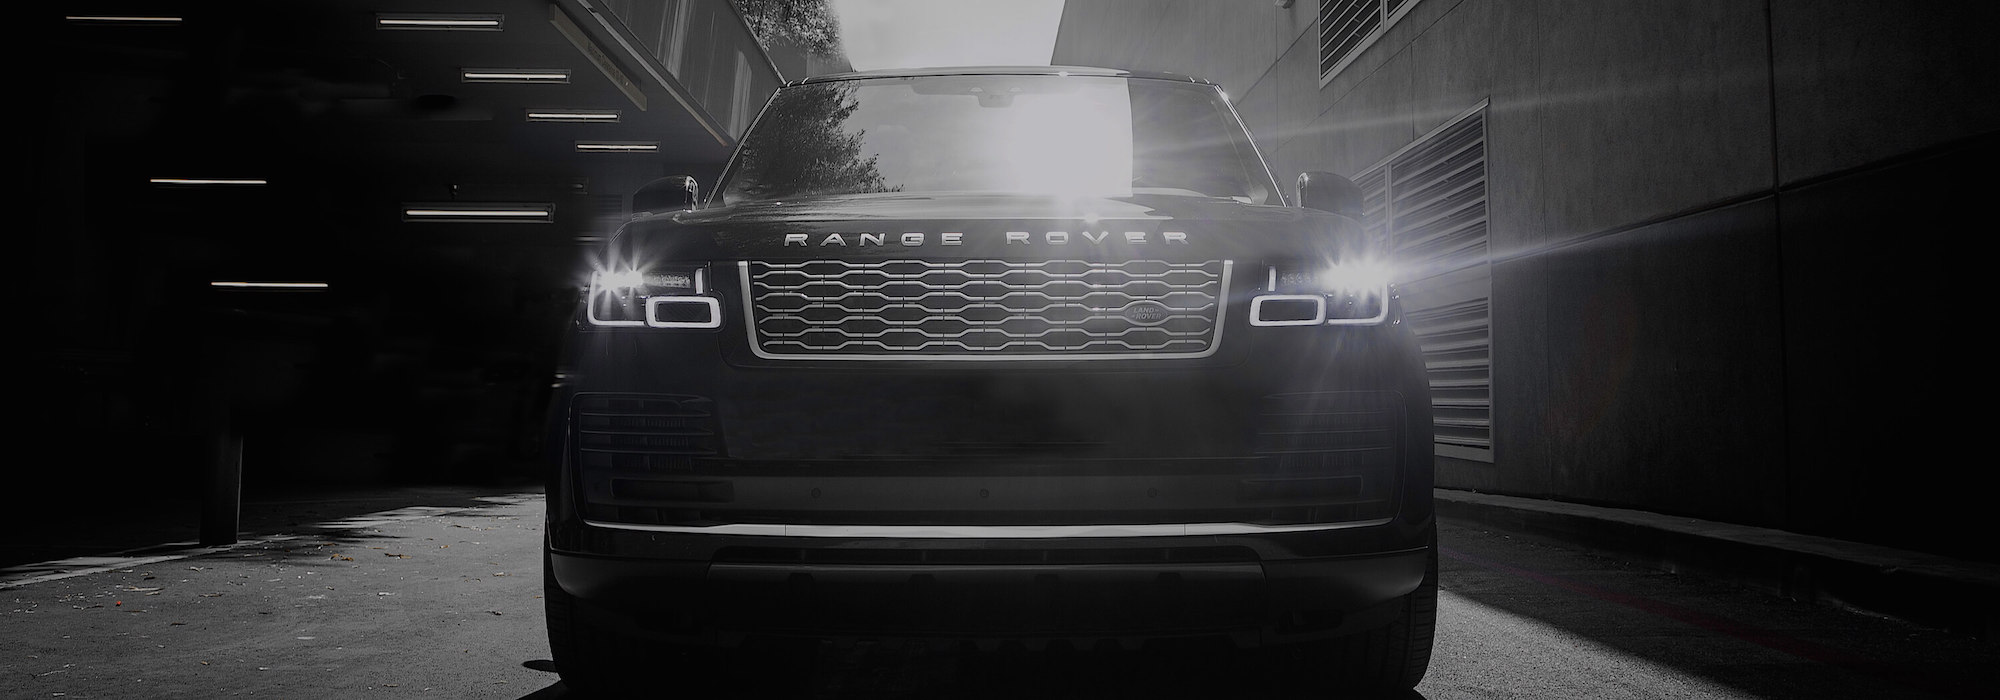 Range Rover Rental Los Angeles